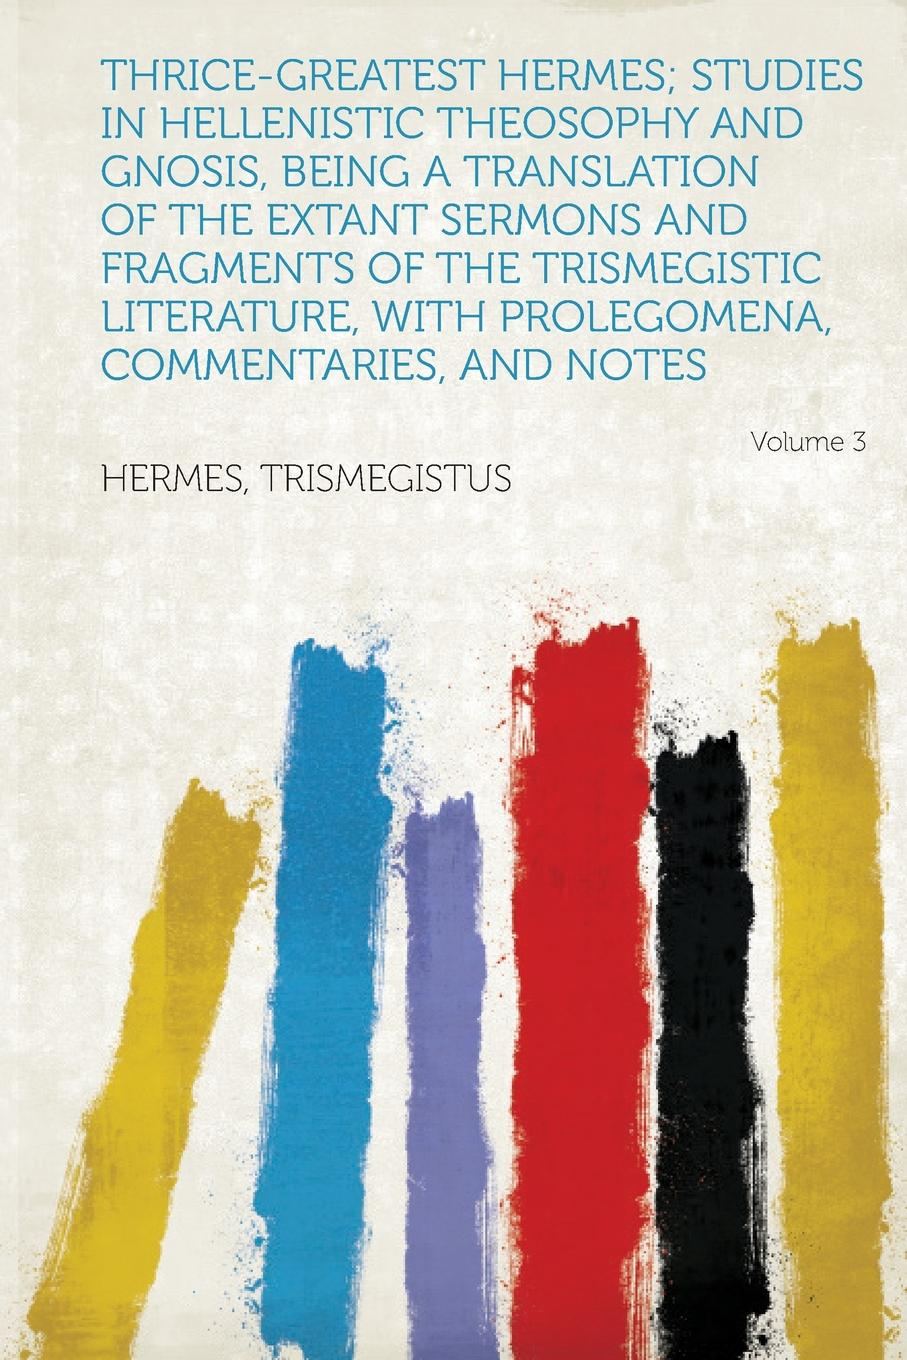 Hermes Trismegistus Thrice-Greatest Hermes; Studies in Hellenistic Theosophy and Gnosis, Being a Translation of the Extant Sermons and Fragments of the Trismegistic Liter